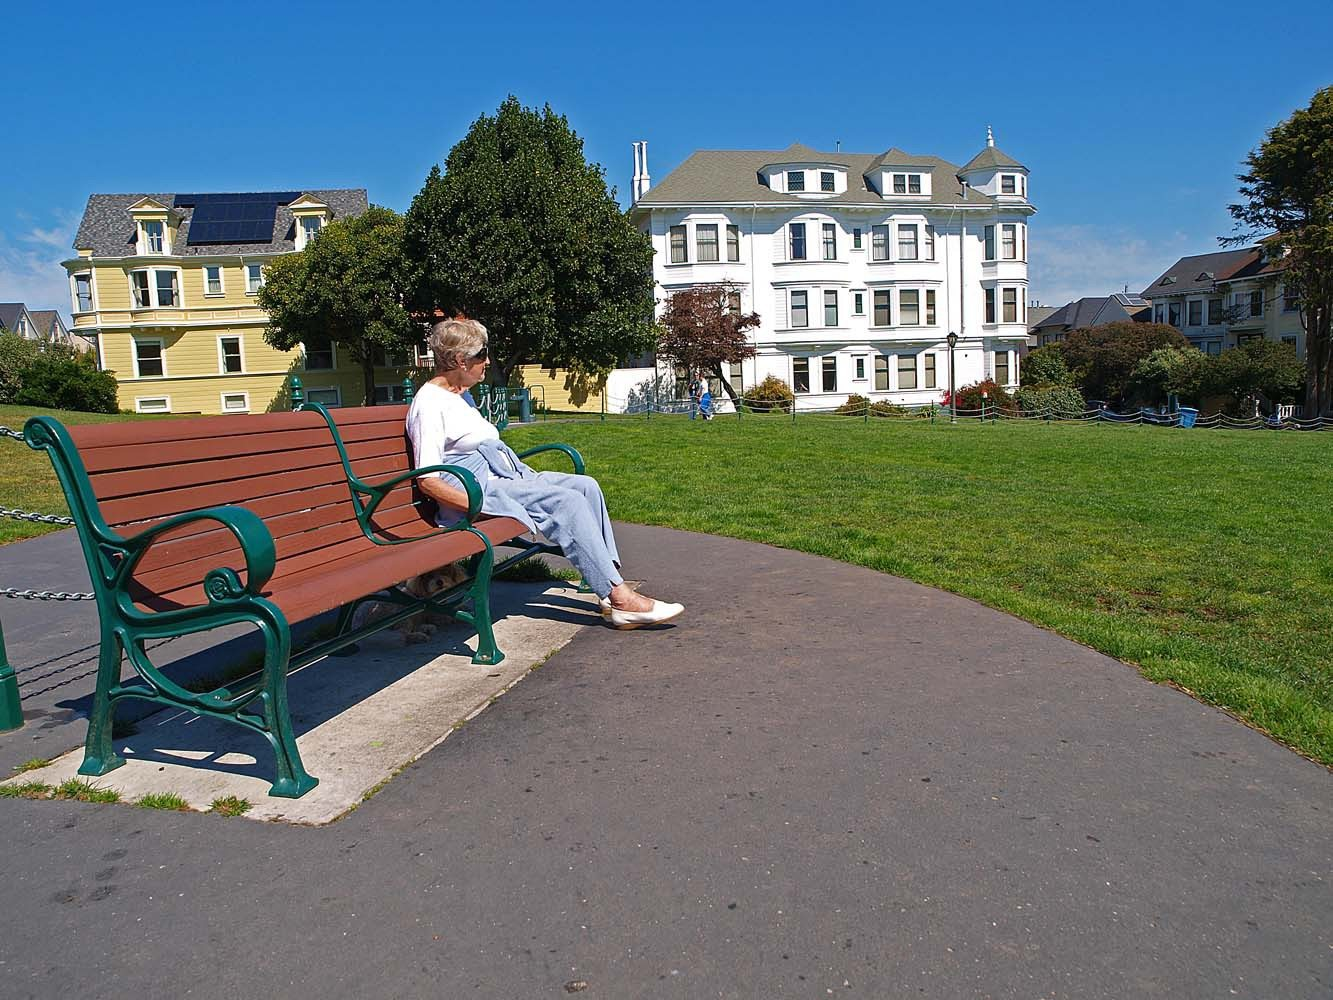 The Duboce Park neighborhood could become the first in nearly 10 years to be deemed a local historic landmark in San Francisco. (Mike Koozmin/The Examiner)